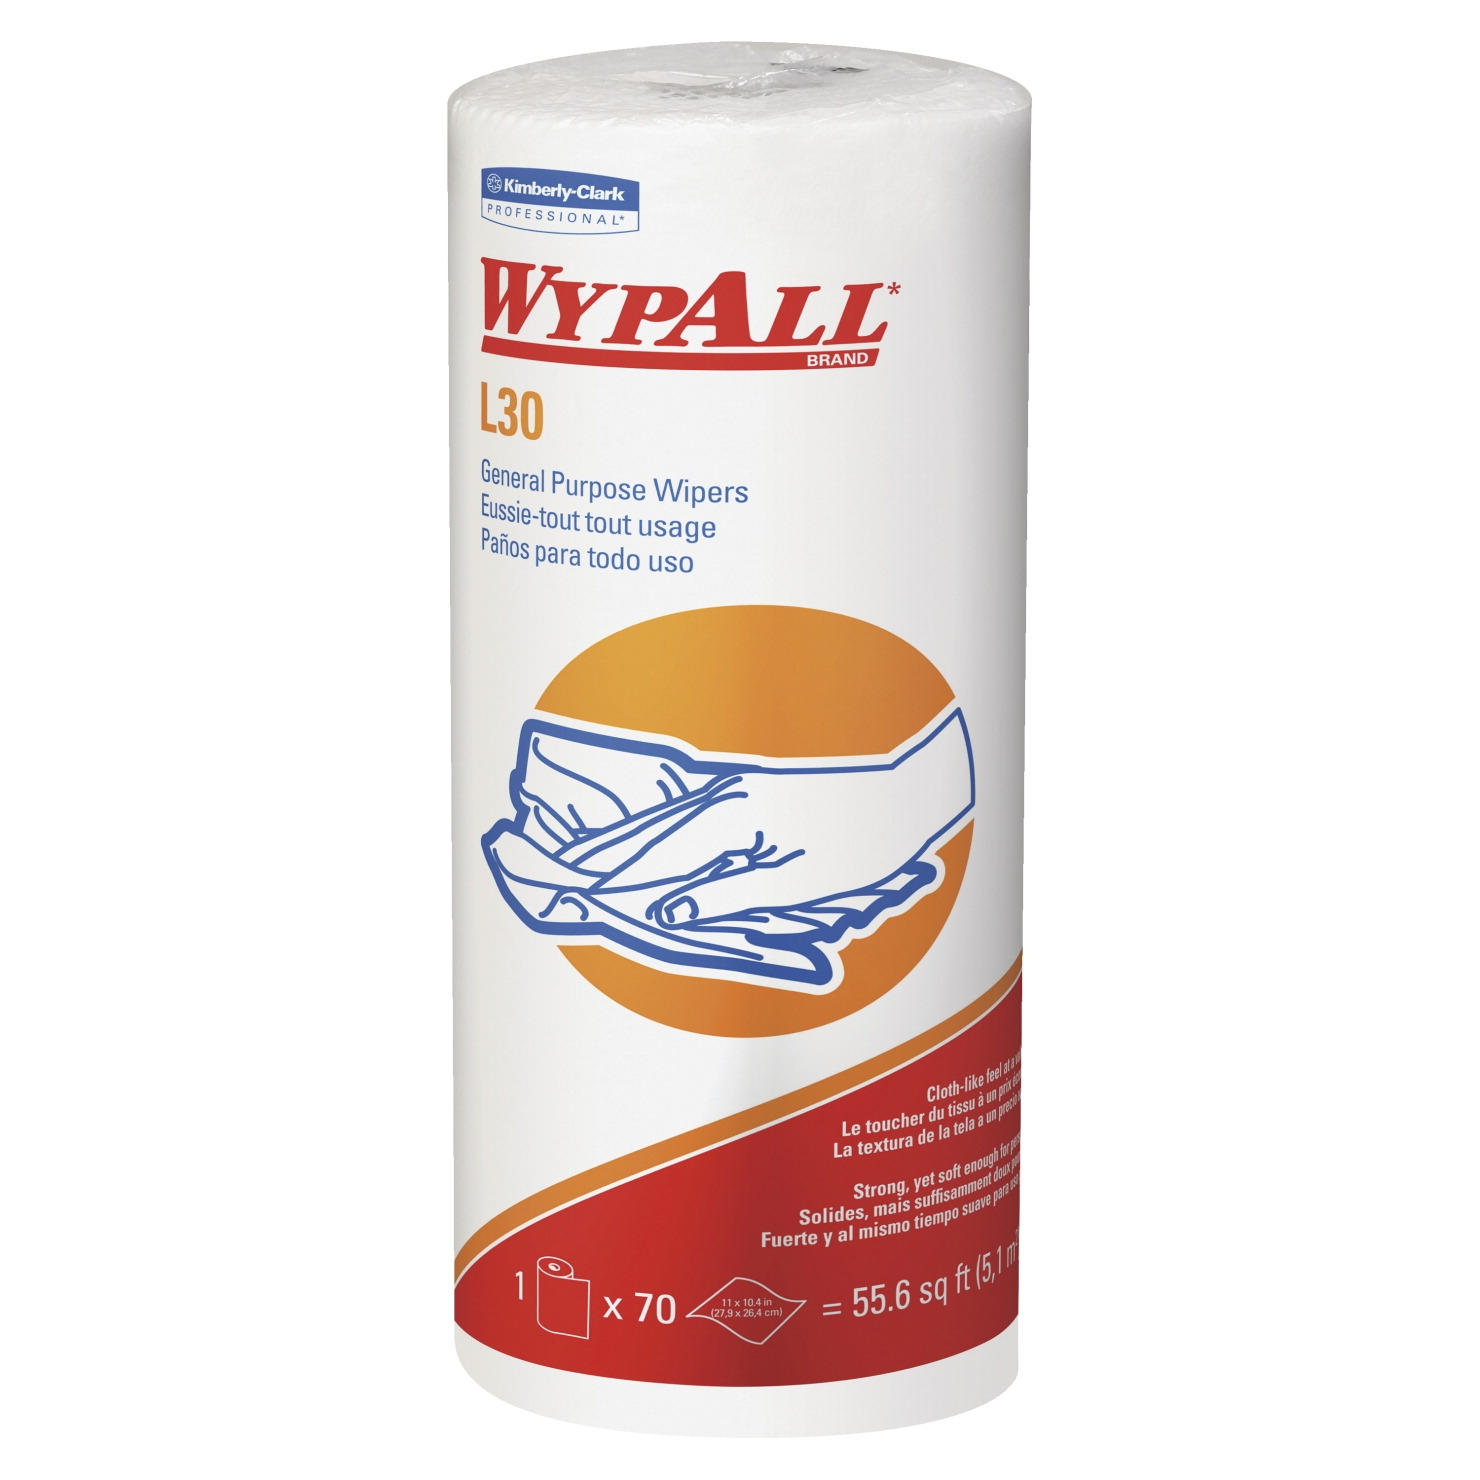 Kimberly-clark Wypall L30 General-purpose Wipers; 11 X 10.4 In; White; 70 Sheets - 1541559 - Facilities Management Cleaning Solvents Sponges And Wipes Towels 1541559